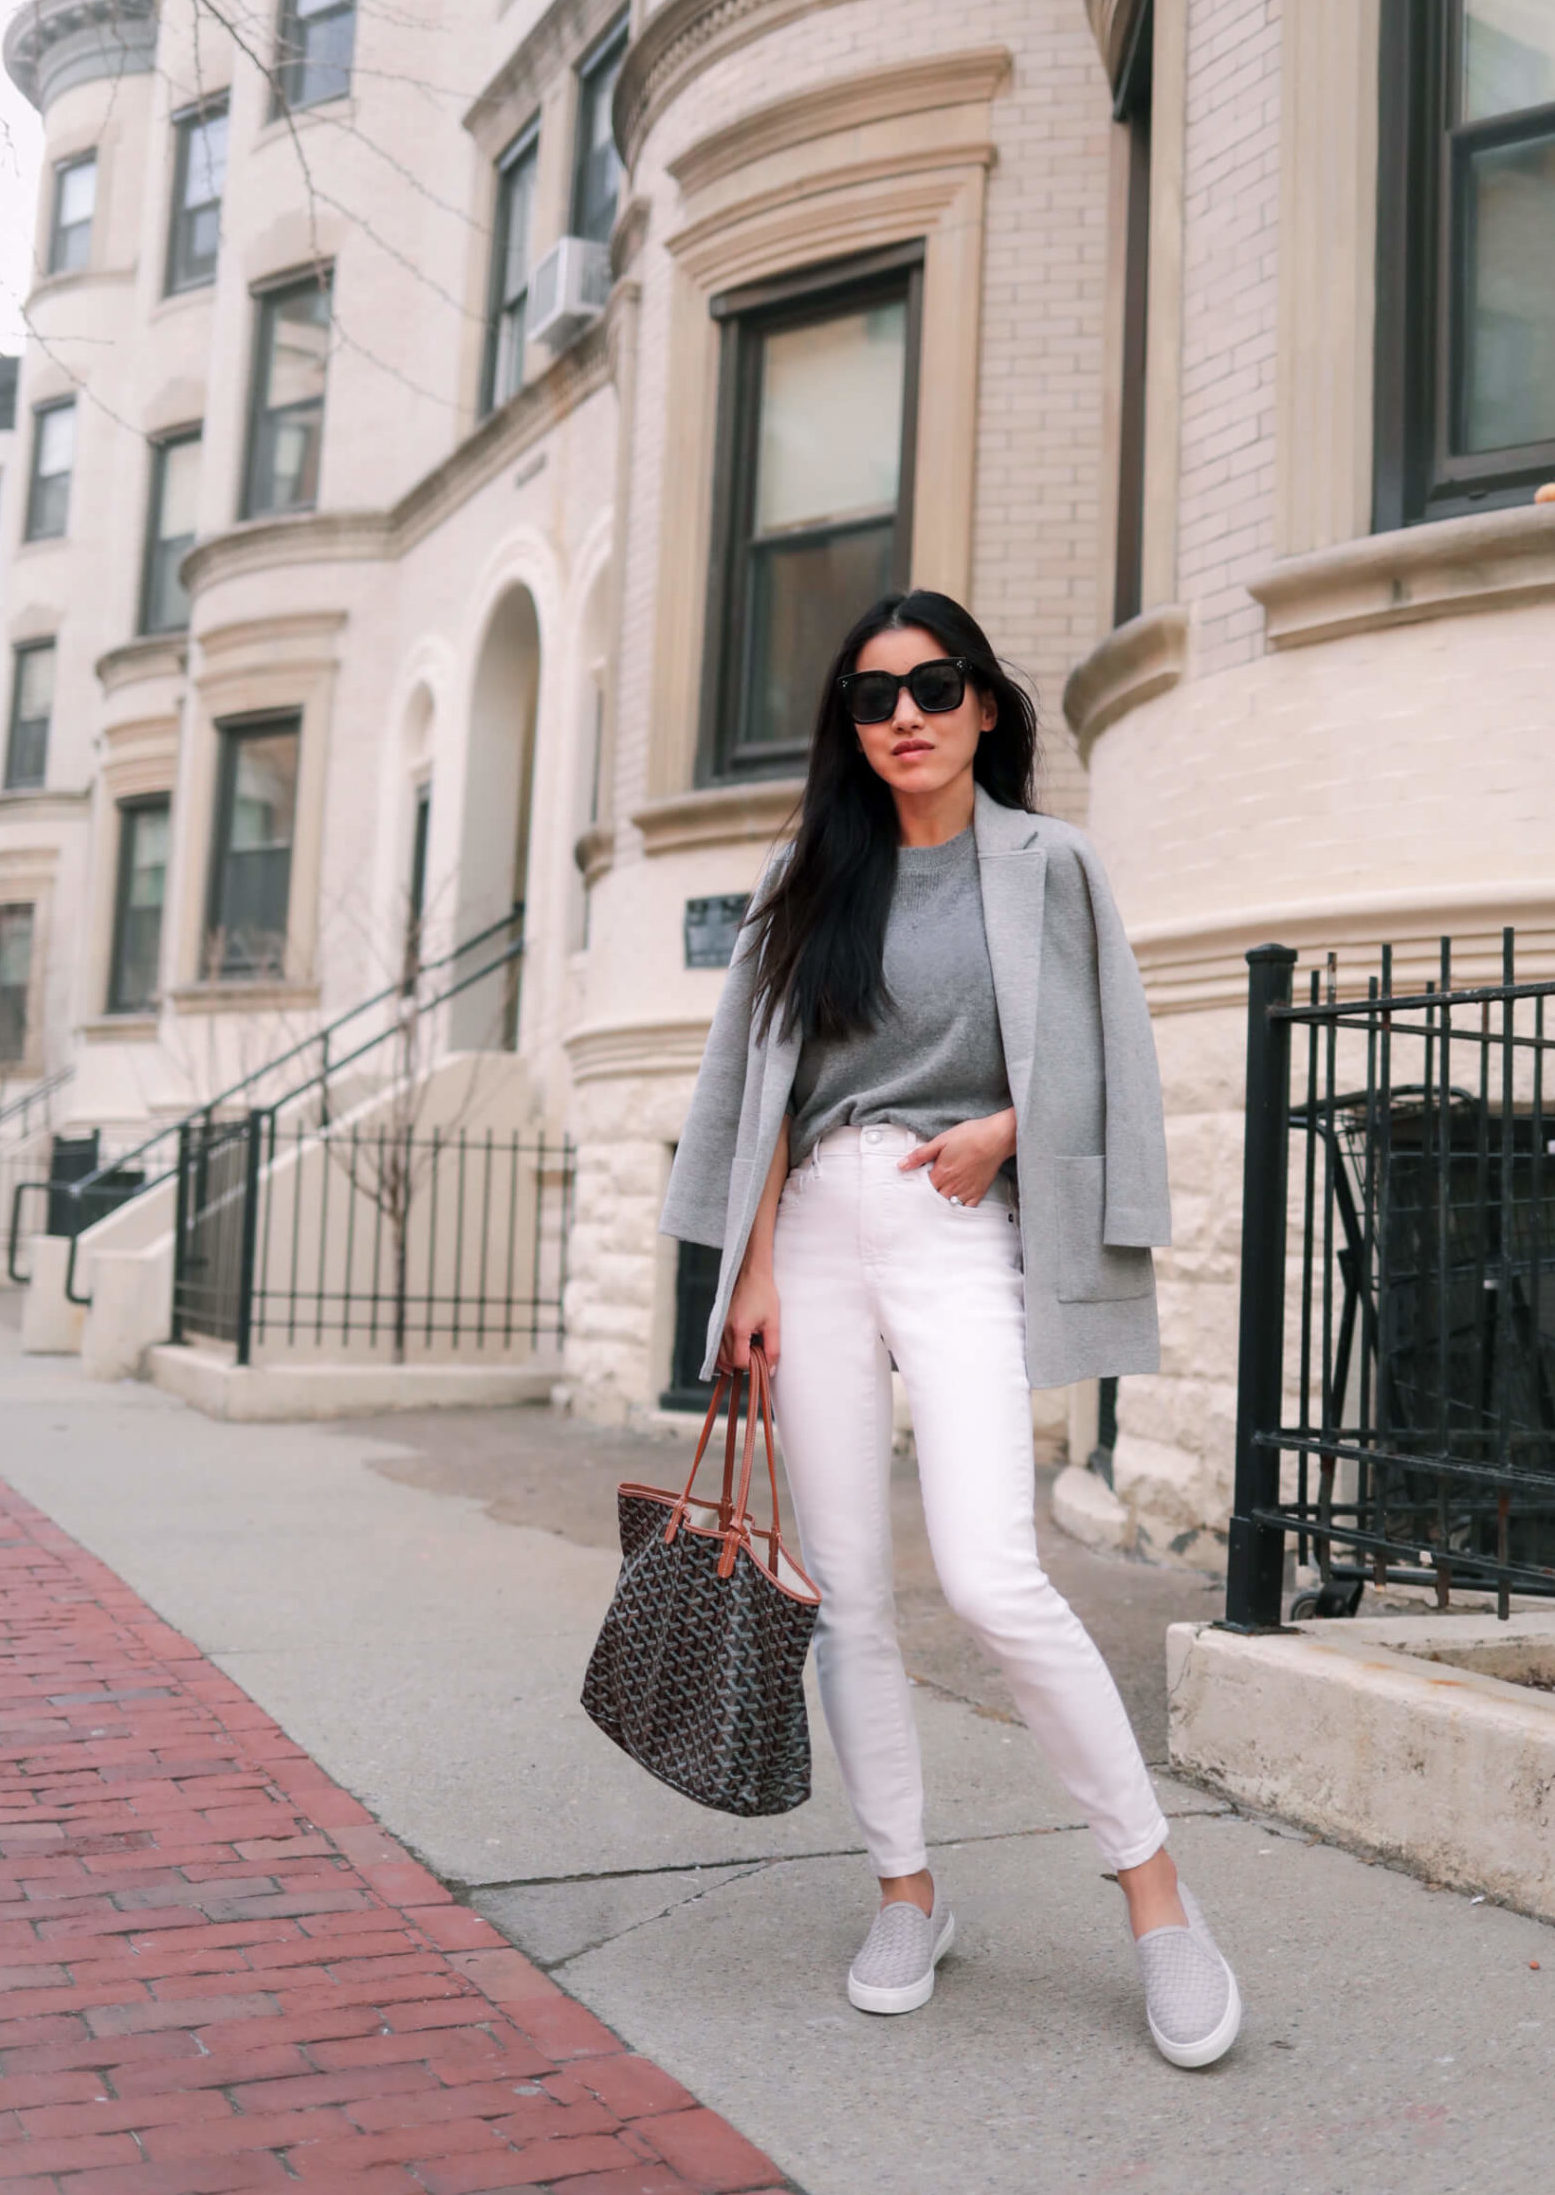 jcrew sophie cardigan petite white jeans styling outfit idea